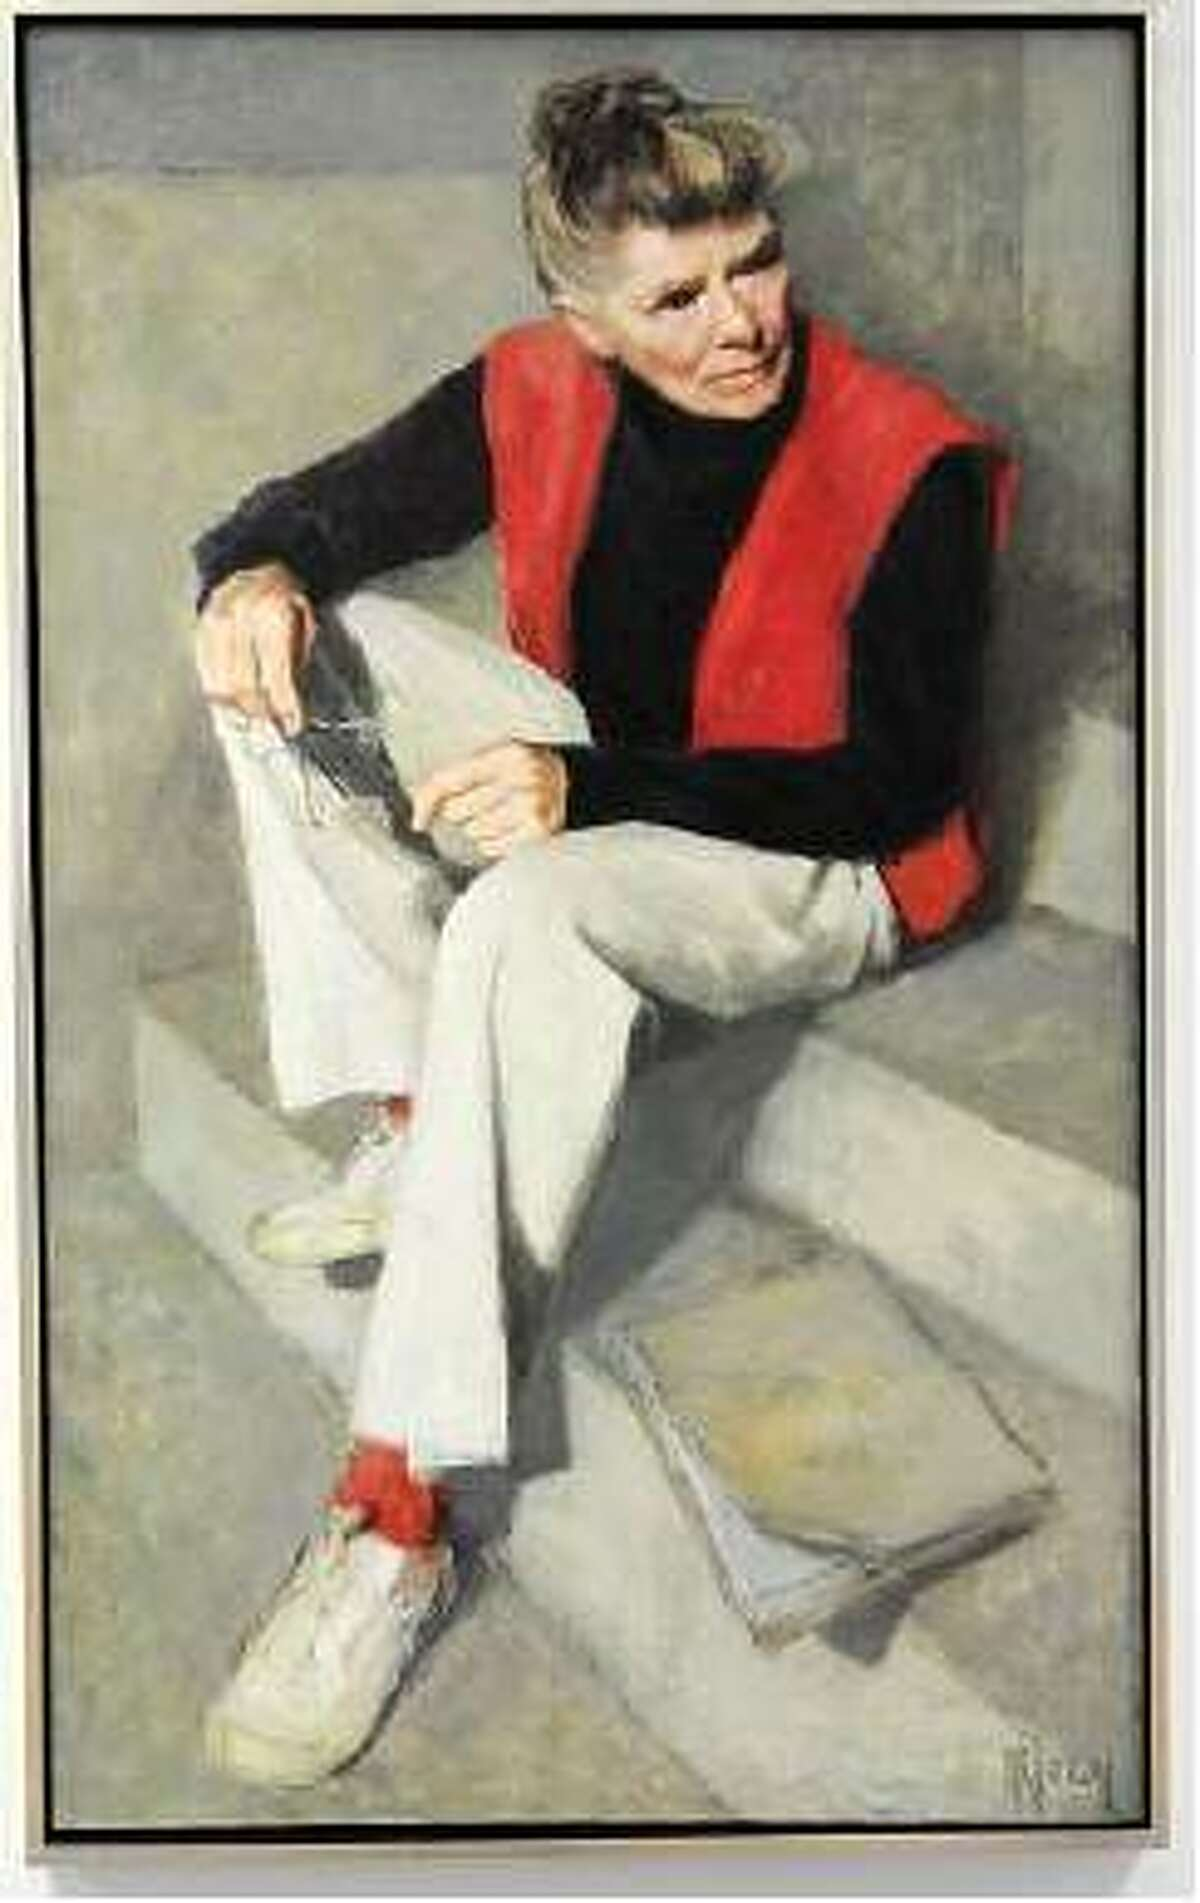 A portrait of Katharine Hepburn by Canadian painter Myfanwy Pavelic that hangs in the Old Saybrook Historical Society's archives building. Mara Lavitt/Register